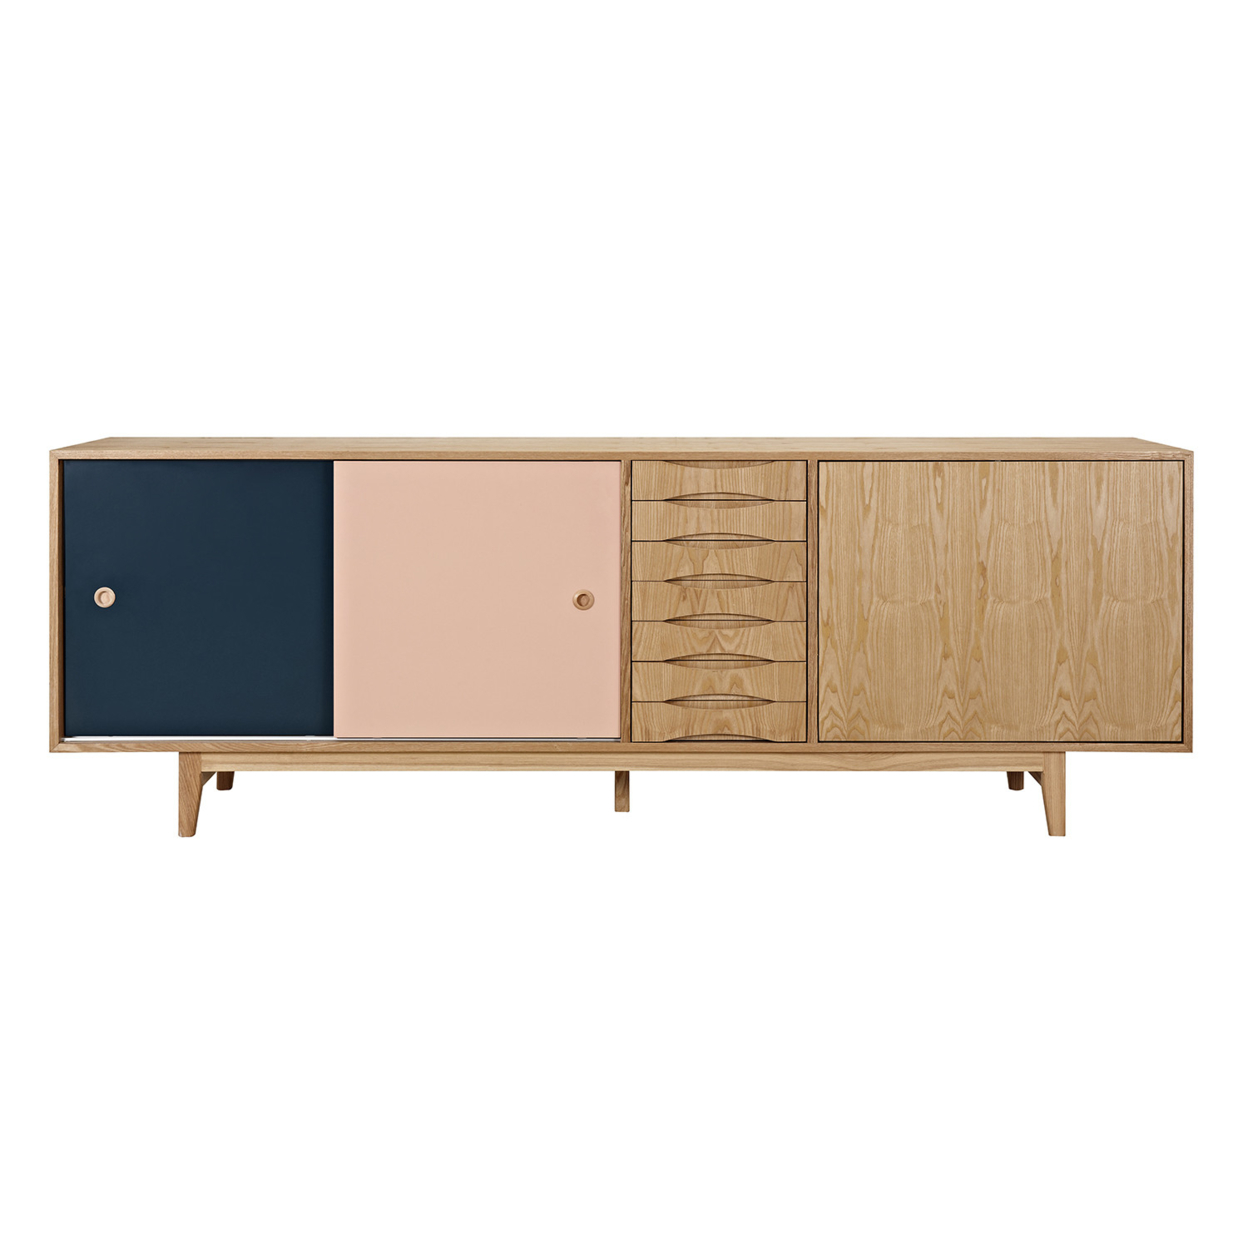 Teal and Peach Alma Sideboard- Natural